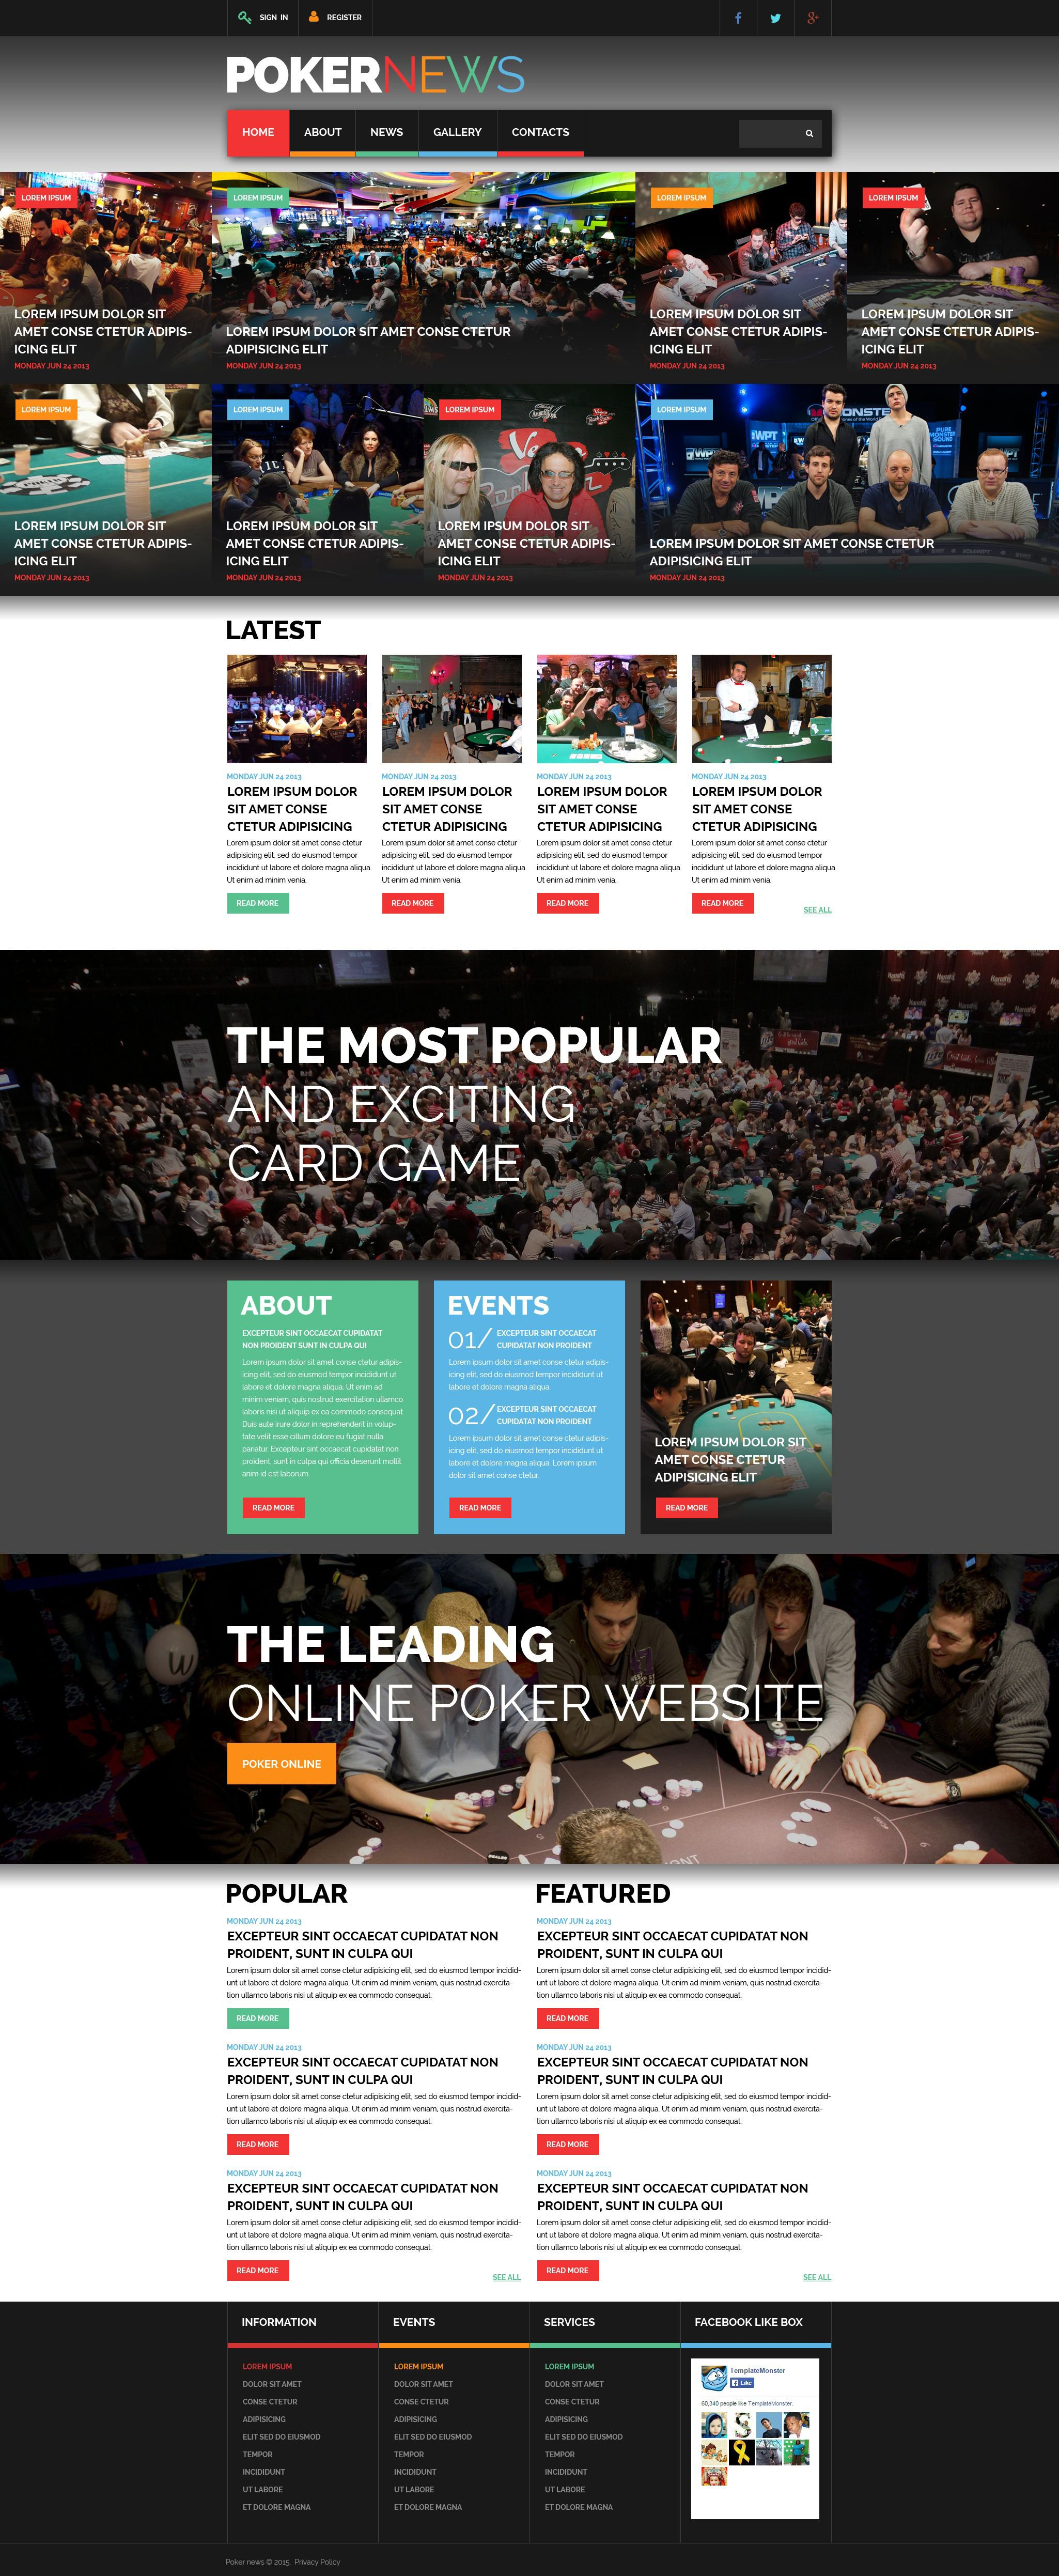 The Poker News Bootstrap Design 54549, one of the best website templates of its kind (most popular, online casino), also known as poker news website template, online casino website template, entertainment website template, luck website template, fortune website template, success website template, cards website template, roulette website template, poker website template, tournament website template, winning website template, players website template, participant website template, jackpot website template, bridge website template, baccarat website template, blackjack website template, slots website template, craps website template, dice website template, bonuses website template, cashier website template, methods website template, rules website template, support website template, affiliation website template, clients website template, currency website template, money website template, pay and related with poker news, online casino, entertainment, luck, fortune, success, cards, roulette, poker, tournament, winning, players, participant, jackpot, bridge, baccarat, blackjack, slots, craps, dice, bonuses, cashier, methods, rules, support, affiliation, clients, currency, money, pay, etc.